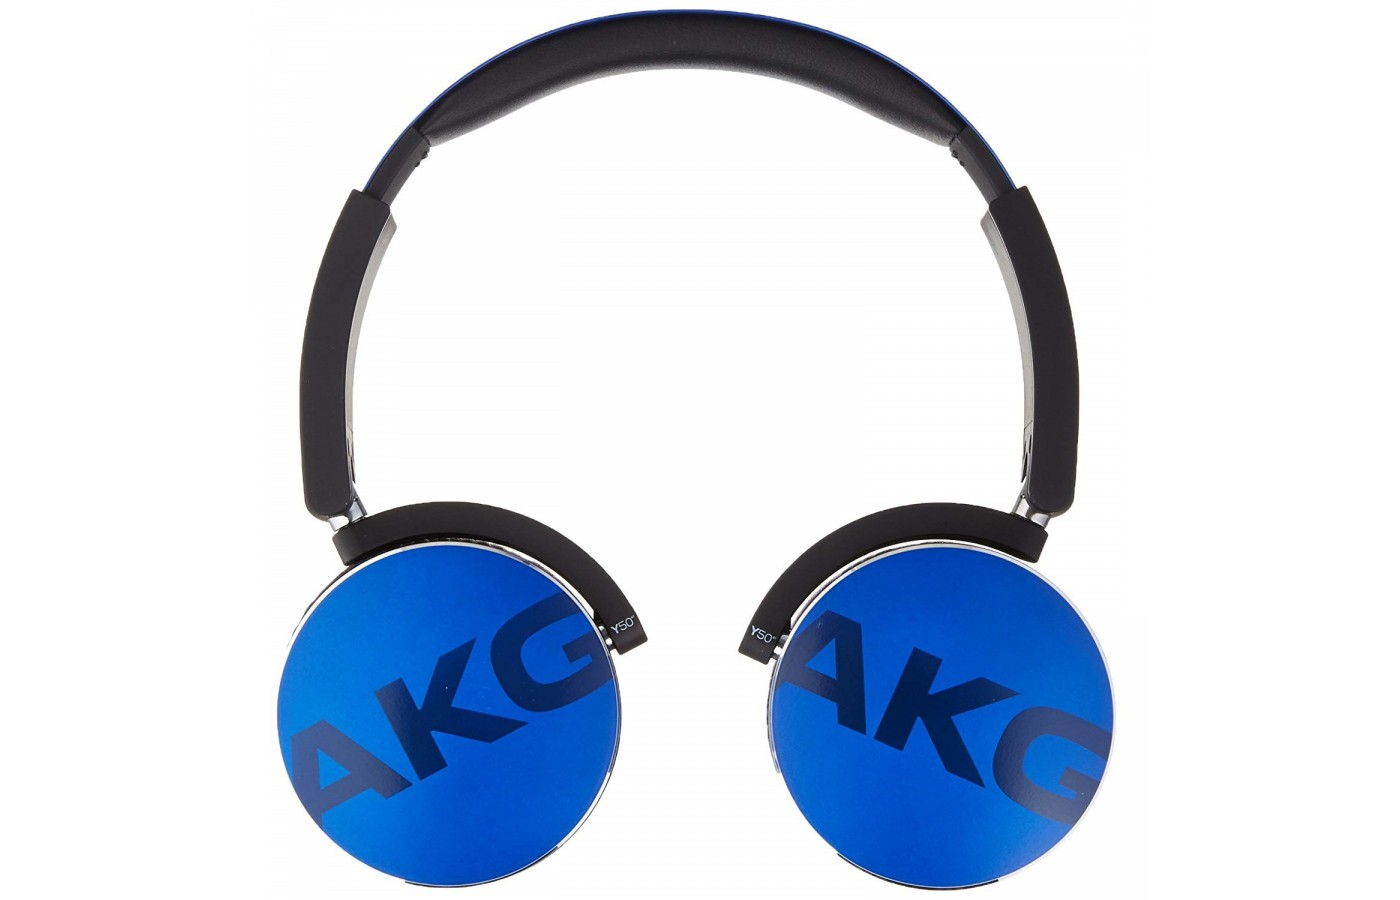 The AKG Y50BT offer a fashionable design for a pleasing aesthetic.